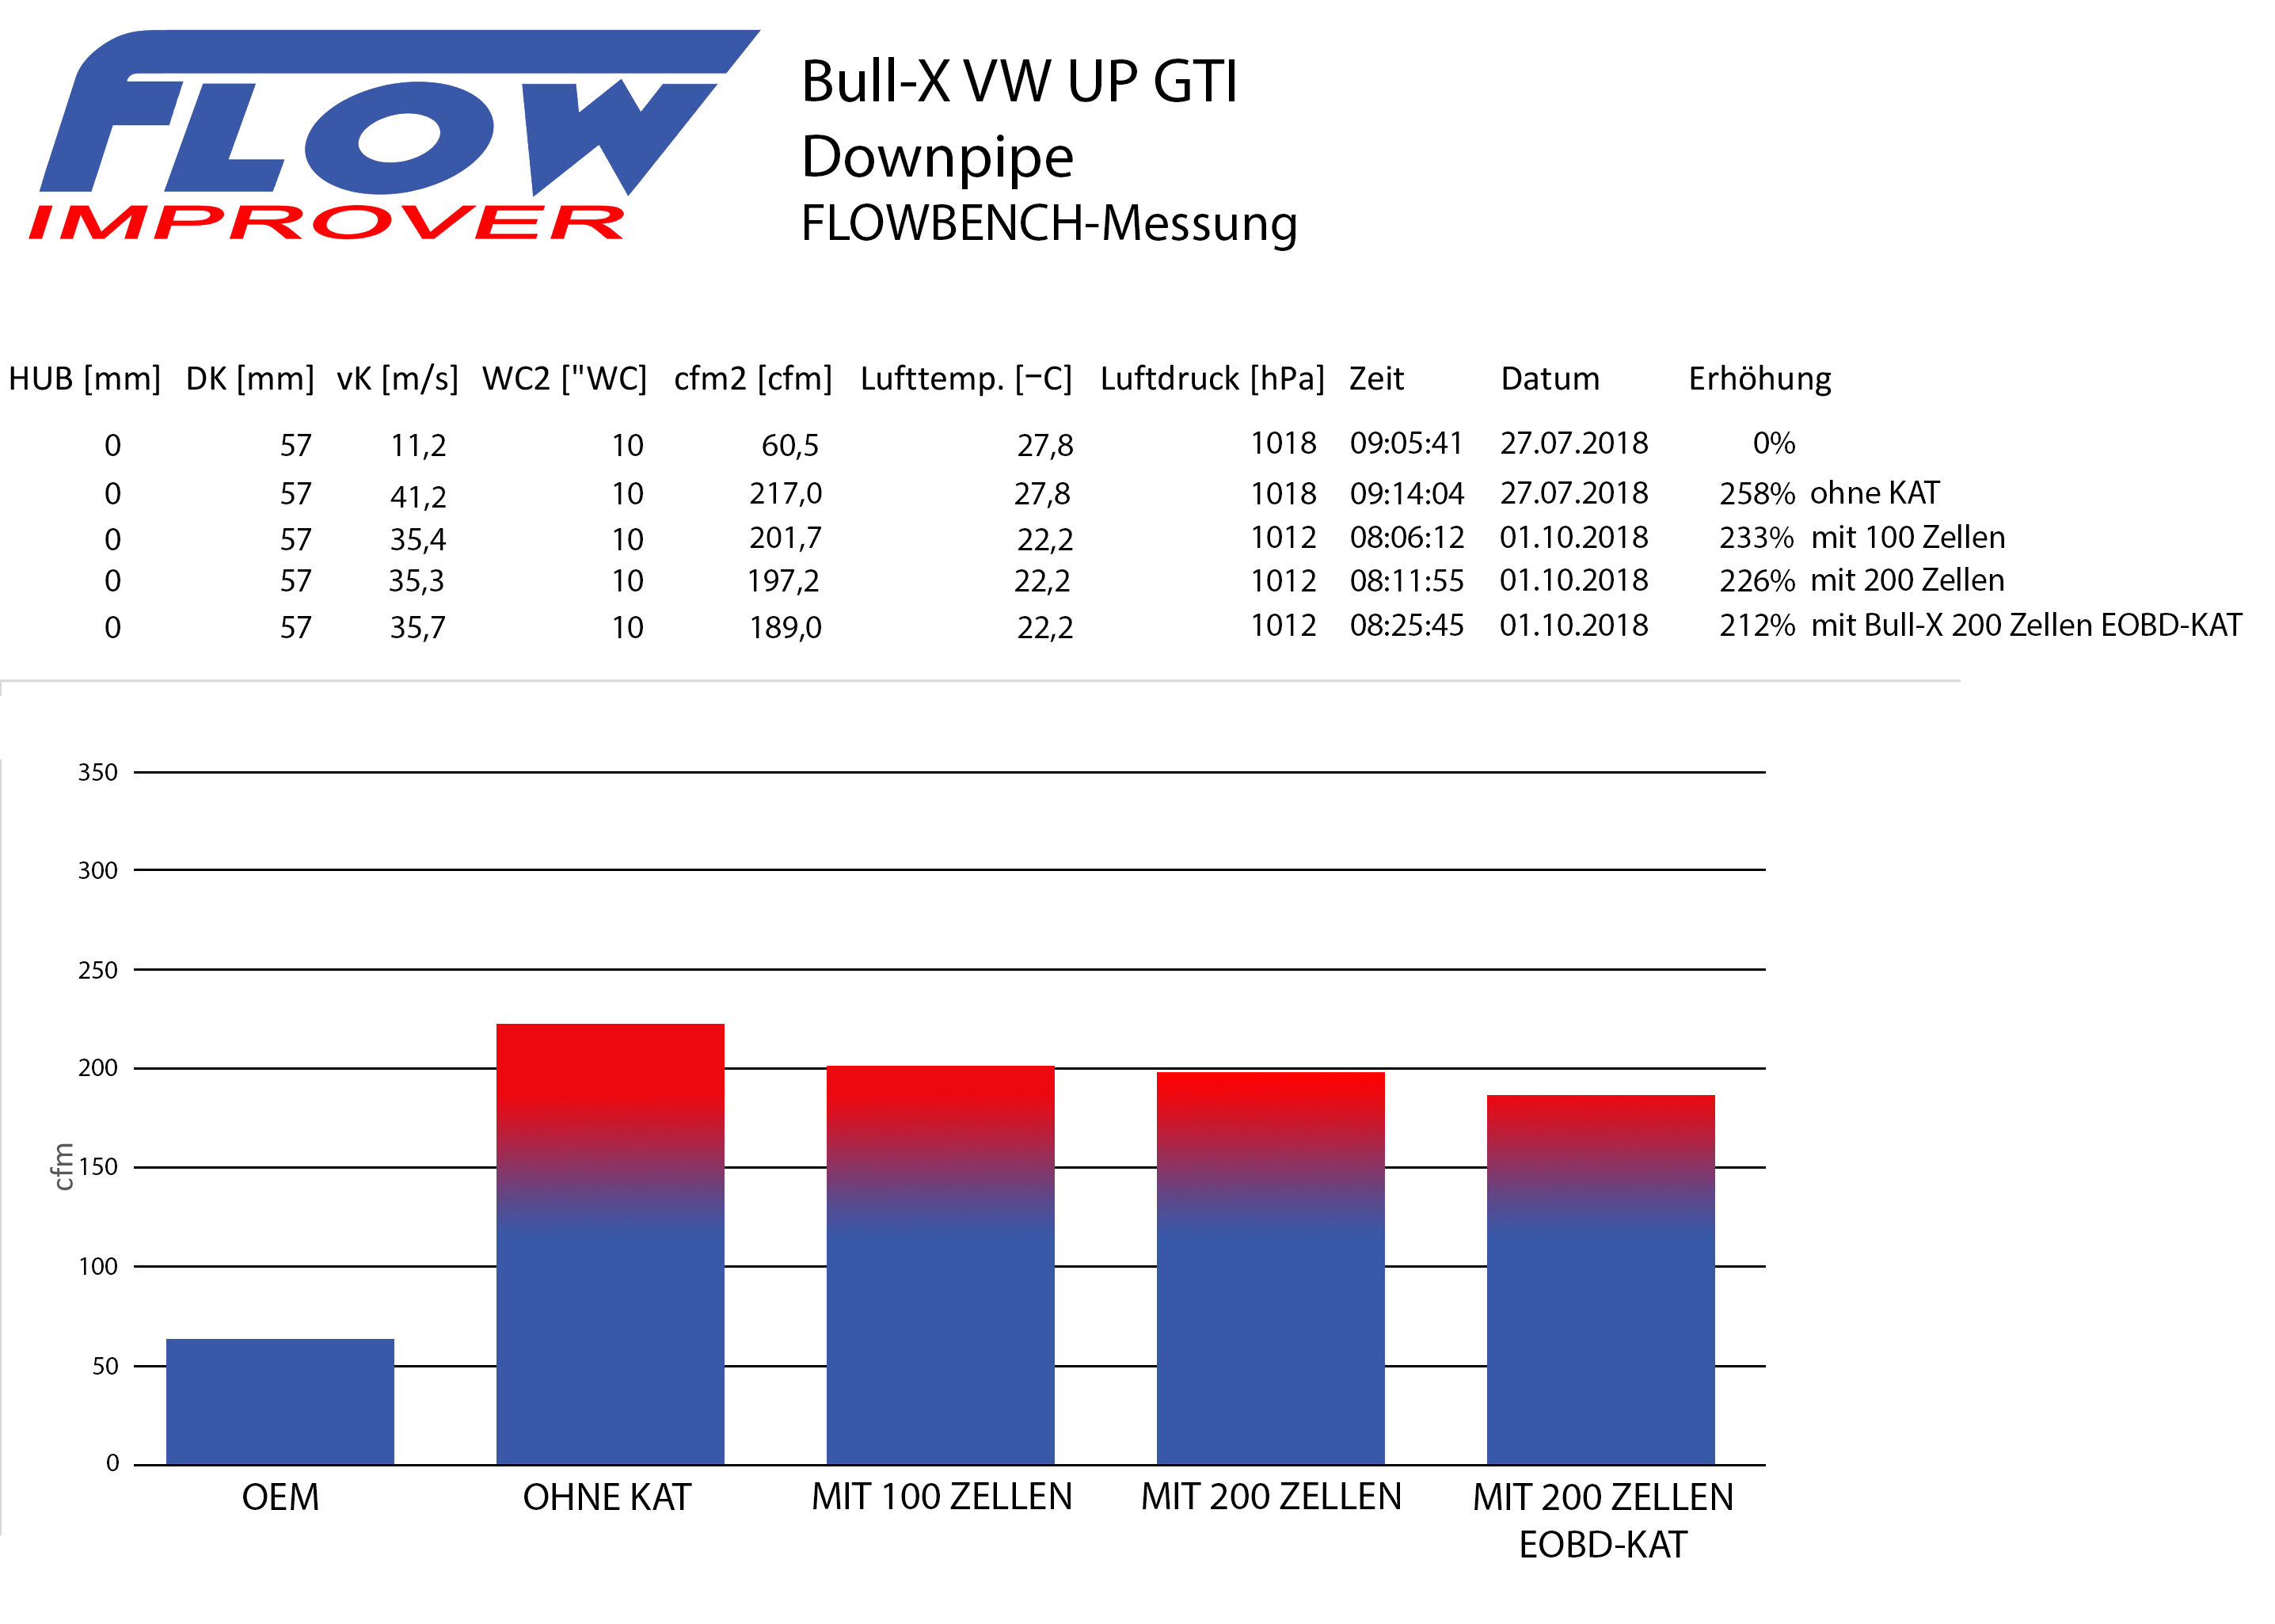 Flowbenchmessung VW UP GTI Downpipe Bull-X